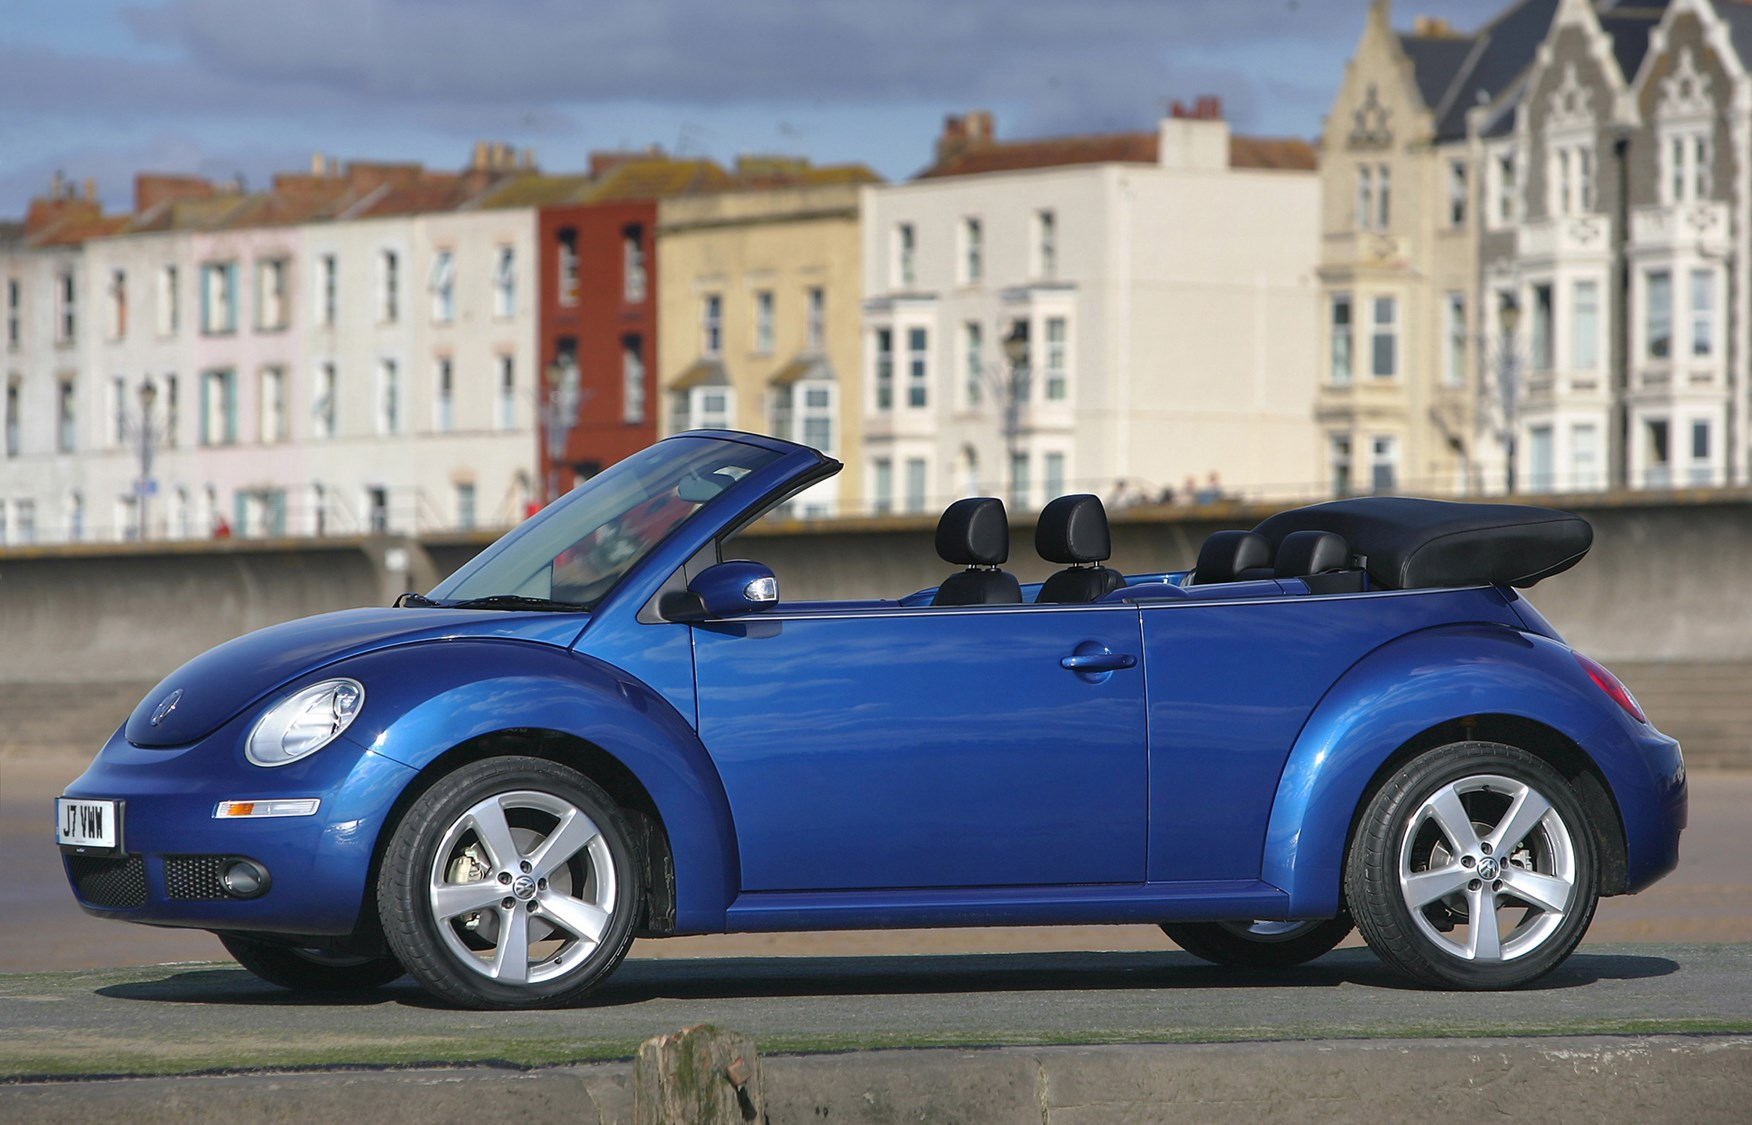 Used Volkswagen Beetle Cabriolet 2003 2010 Review Parkers